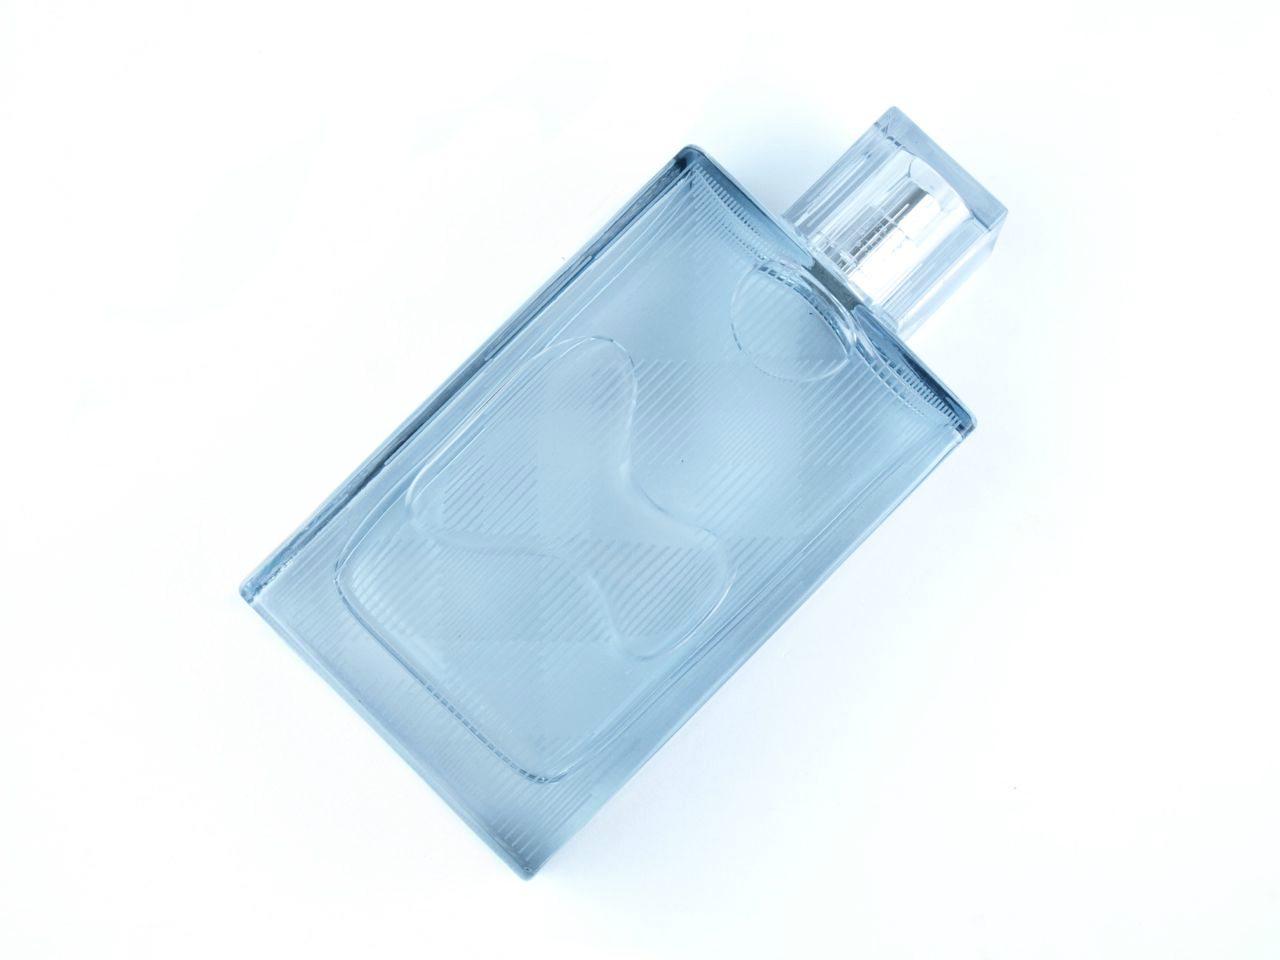 Burberry Brit Splash for Him Eau de Toilette: Review